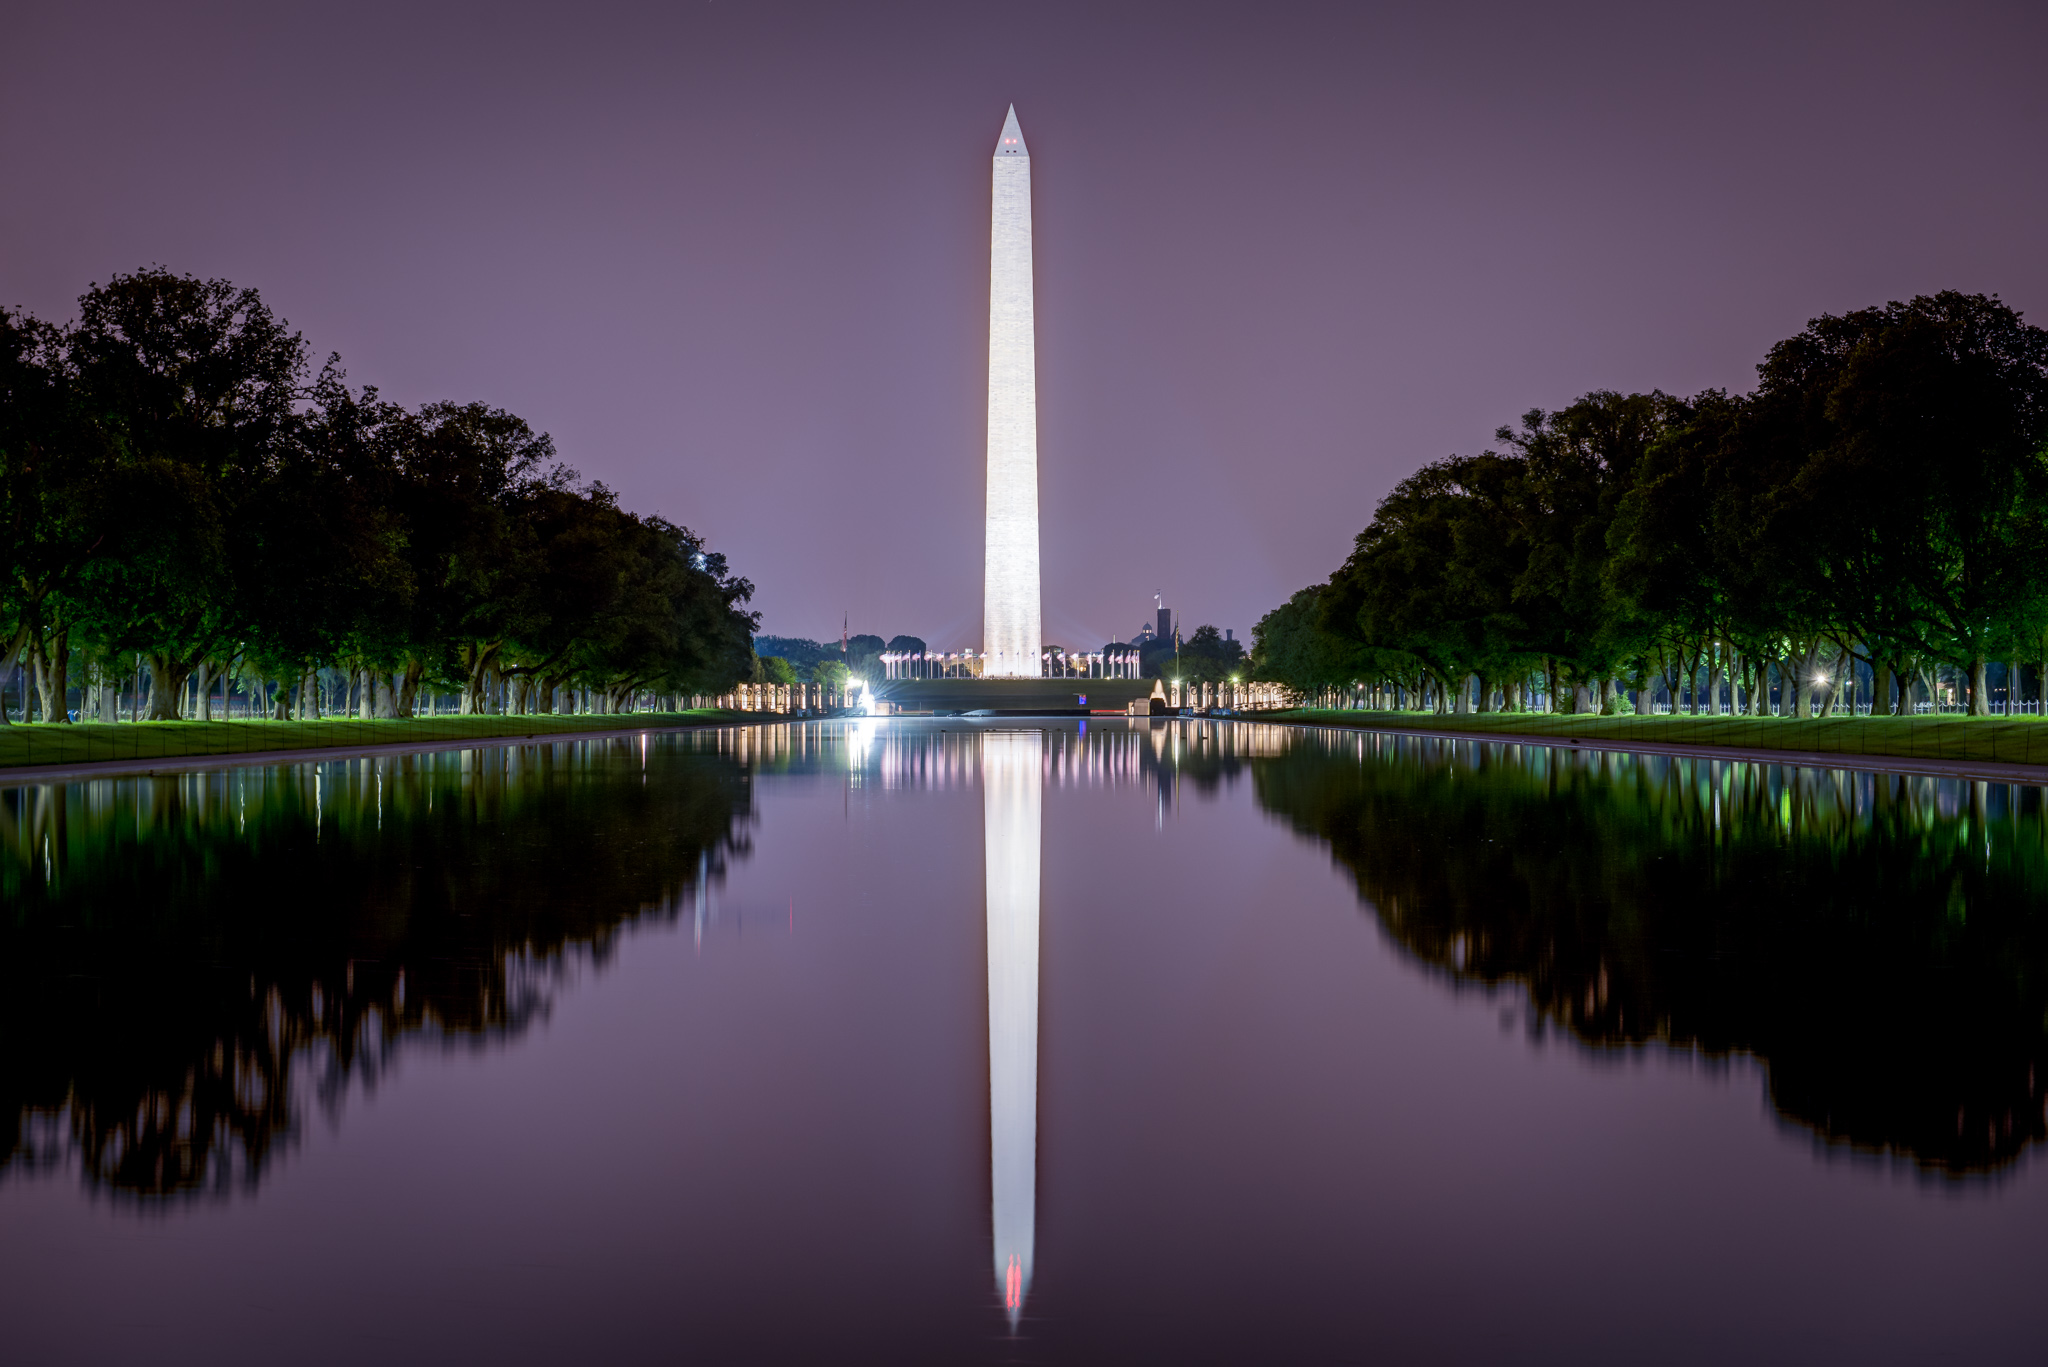 Lincoln Memorial Reflecting Pool, USA